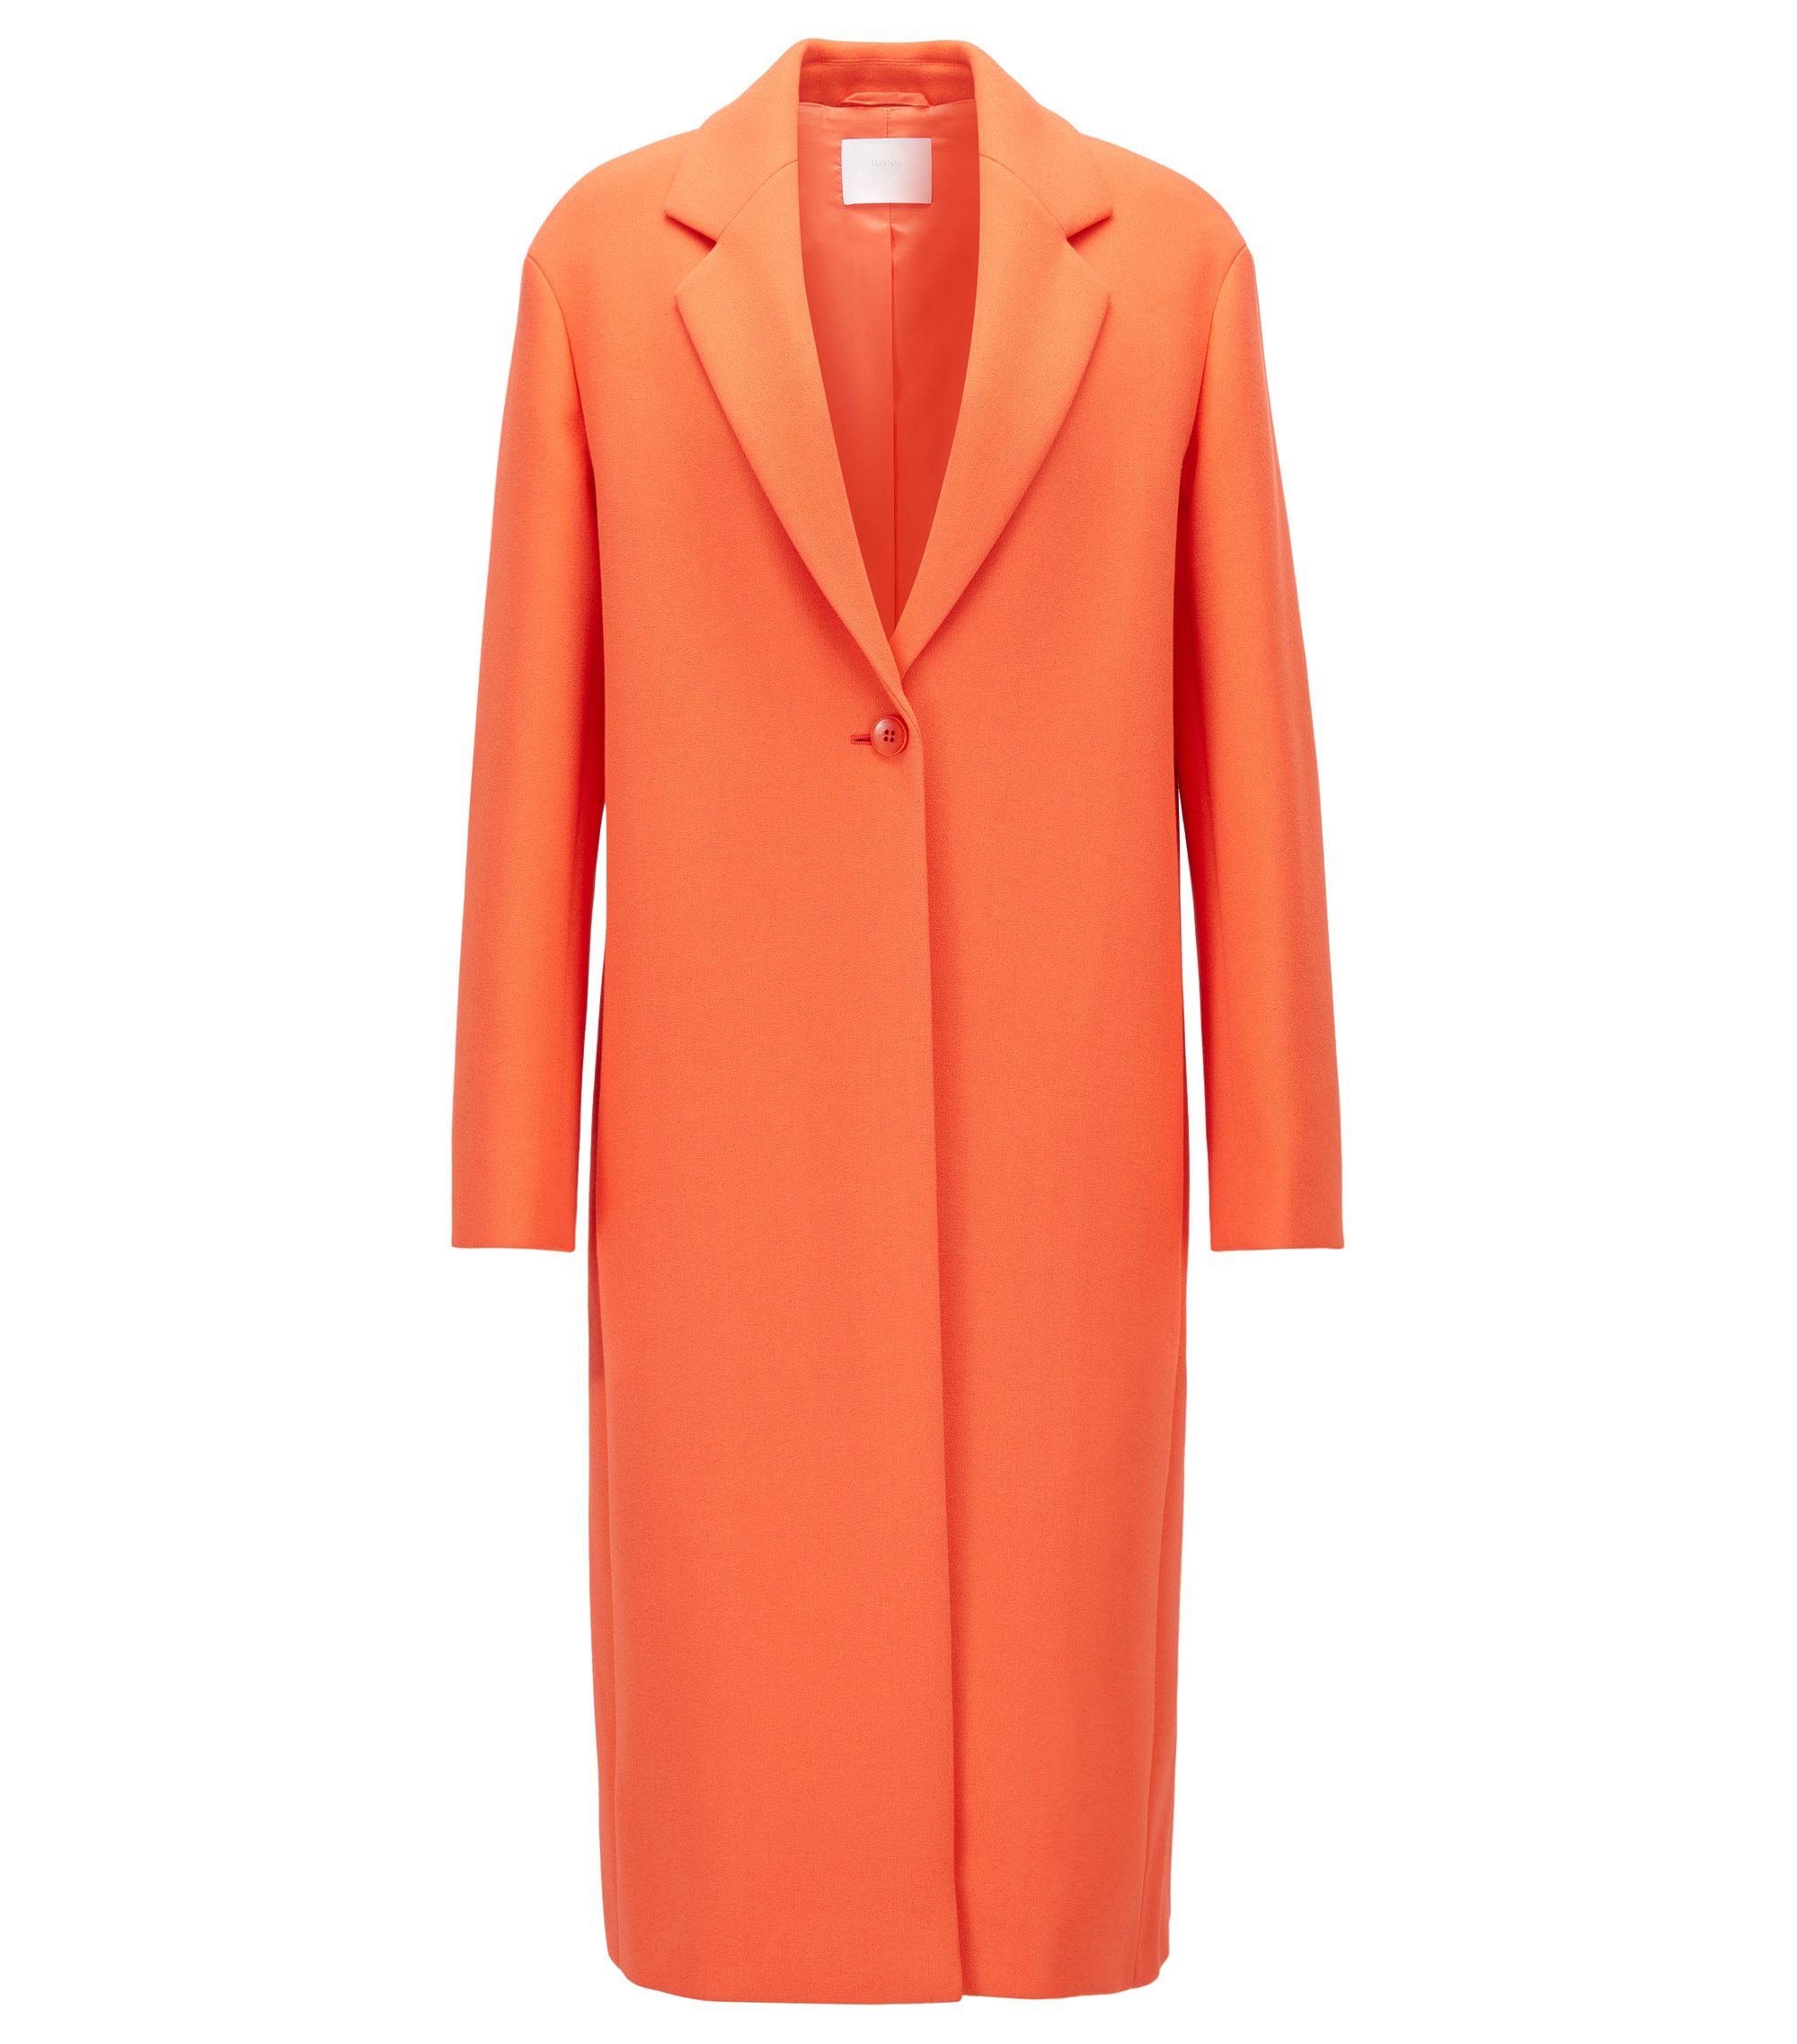 Single-Button Coat | Calenara GC, Orange